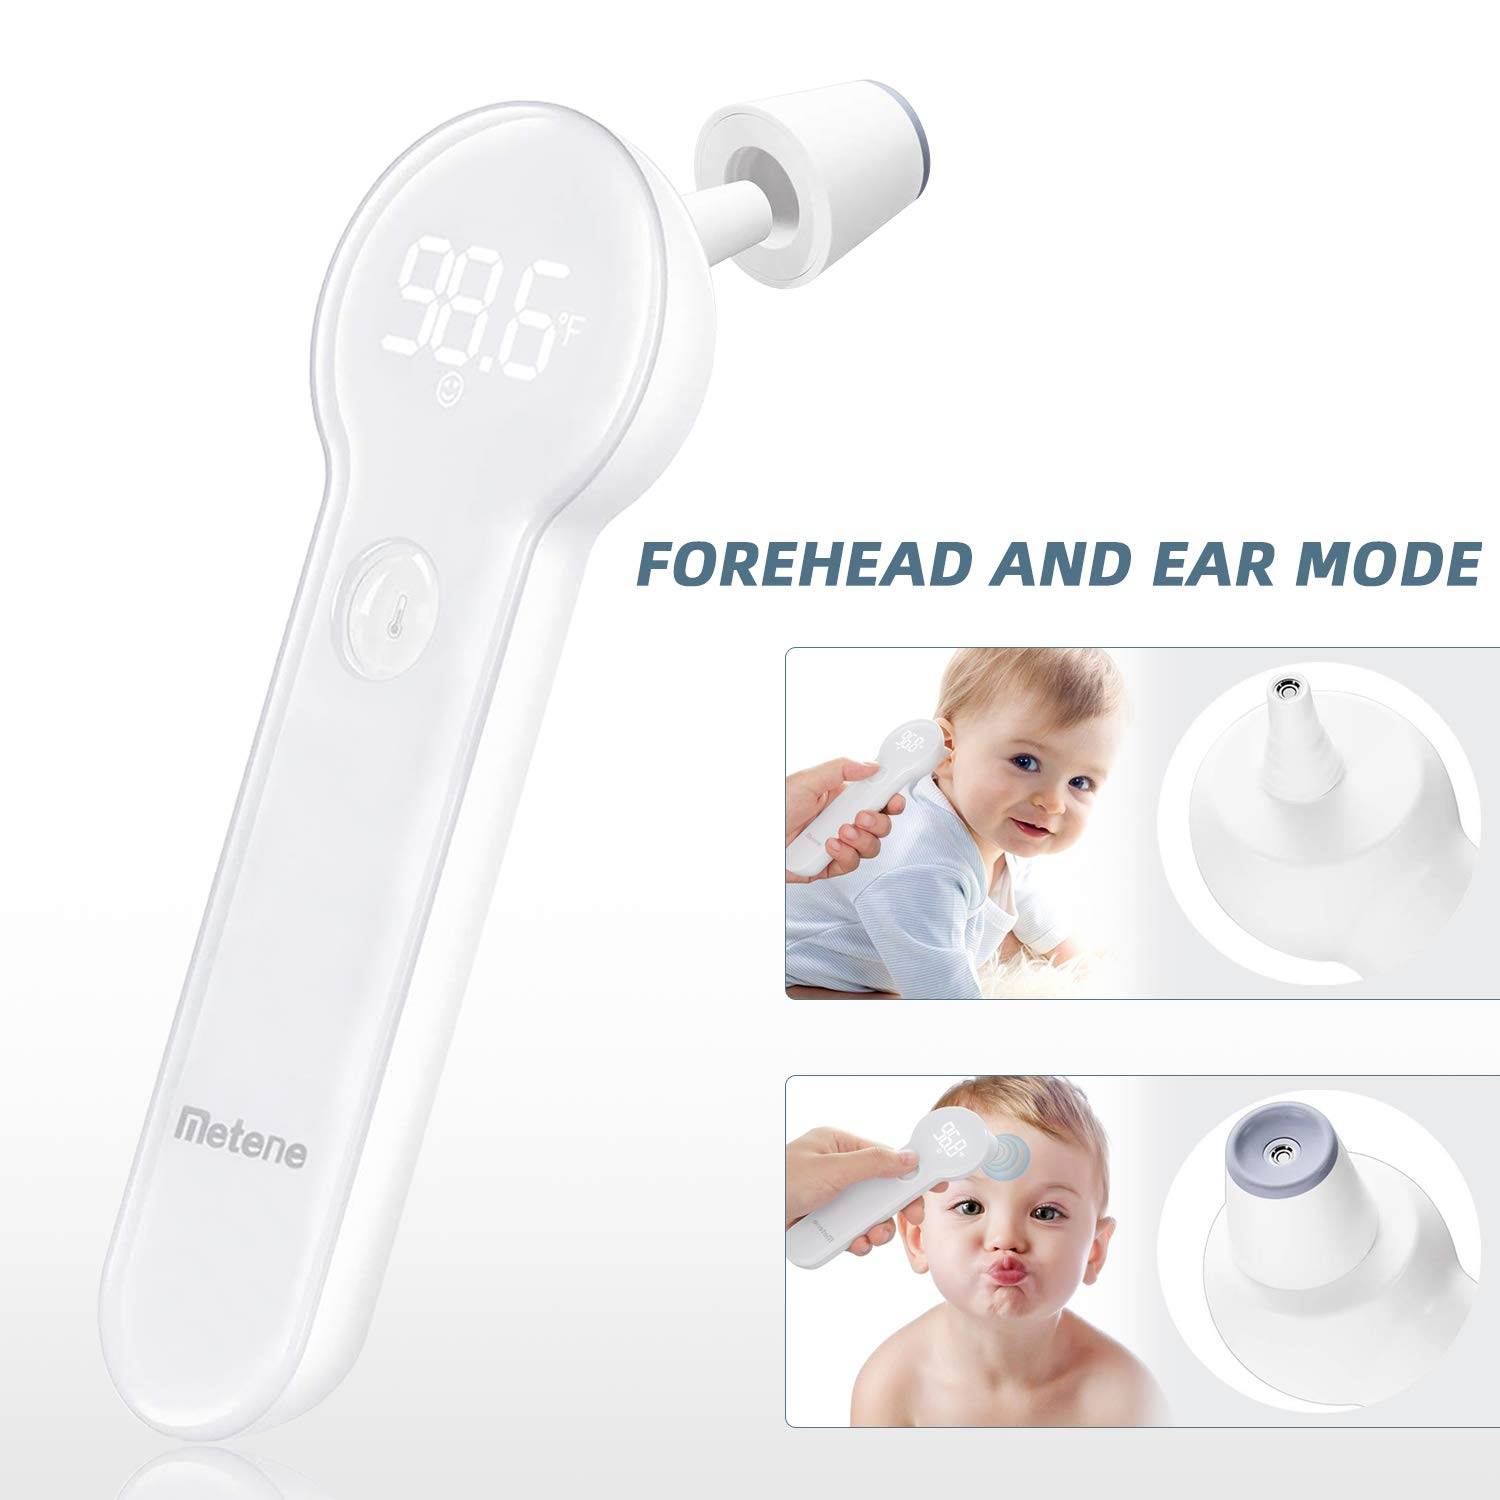 Baby Thermometer for Fever, Instant Accurate Reading Medical Digital Forehead and Ear Thermometer, Metene Infrared Infant Thermometer for Best Accuracy with Indicator for Kids, Toddlers, and Adults